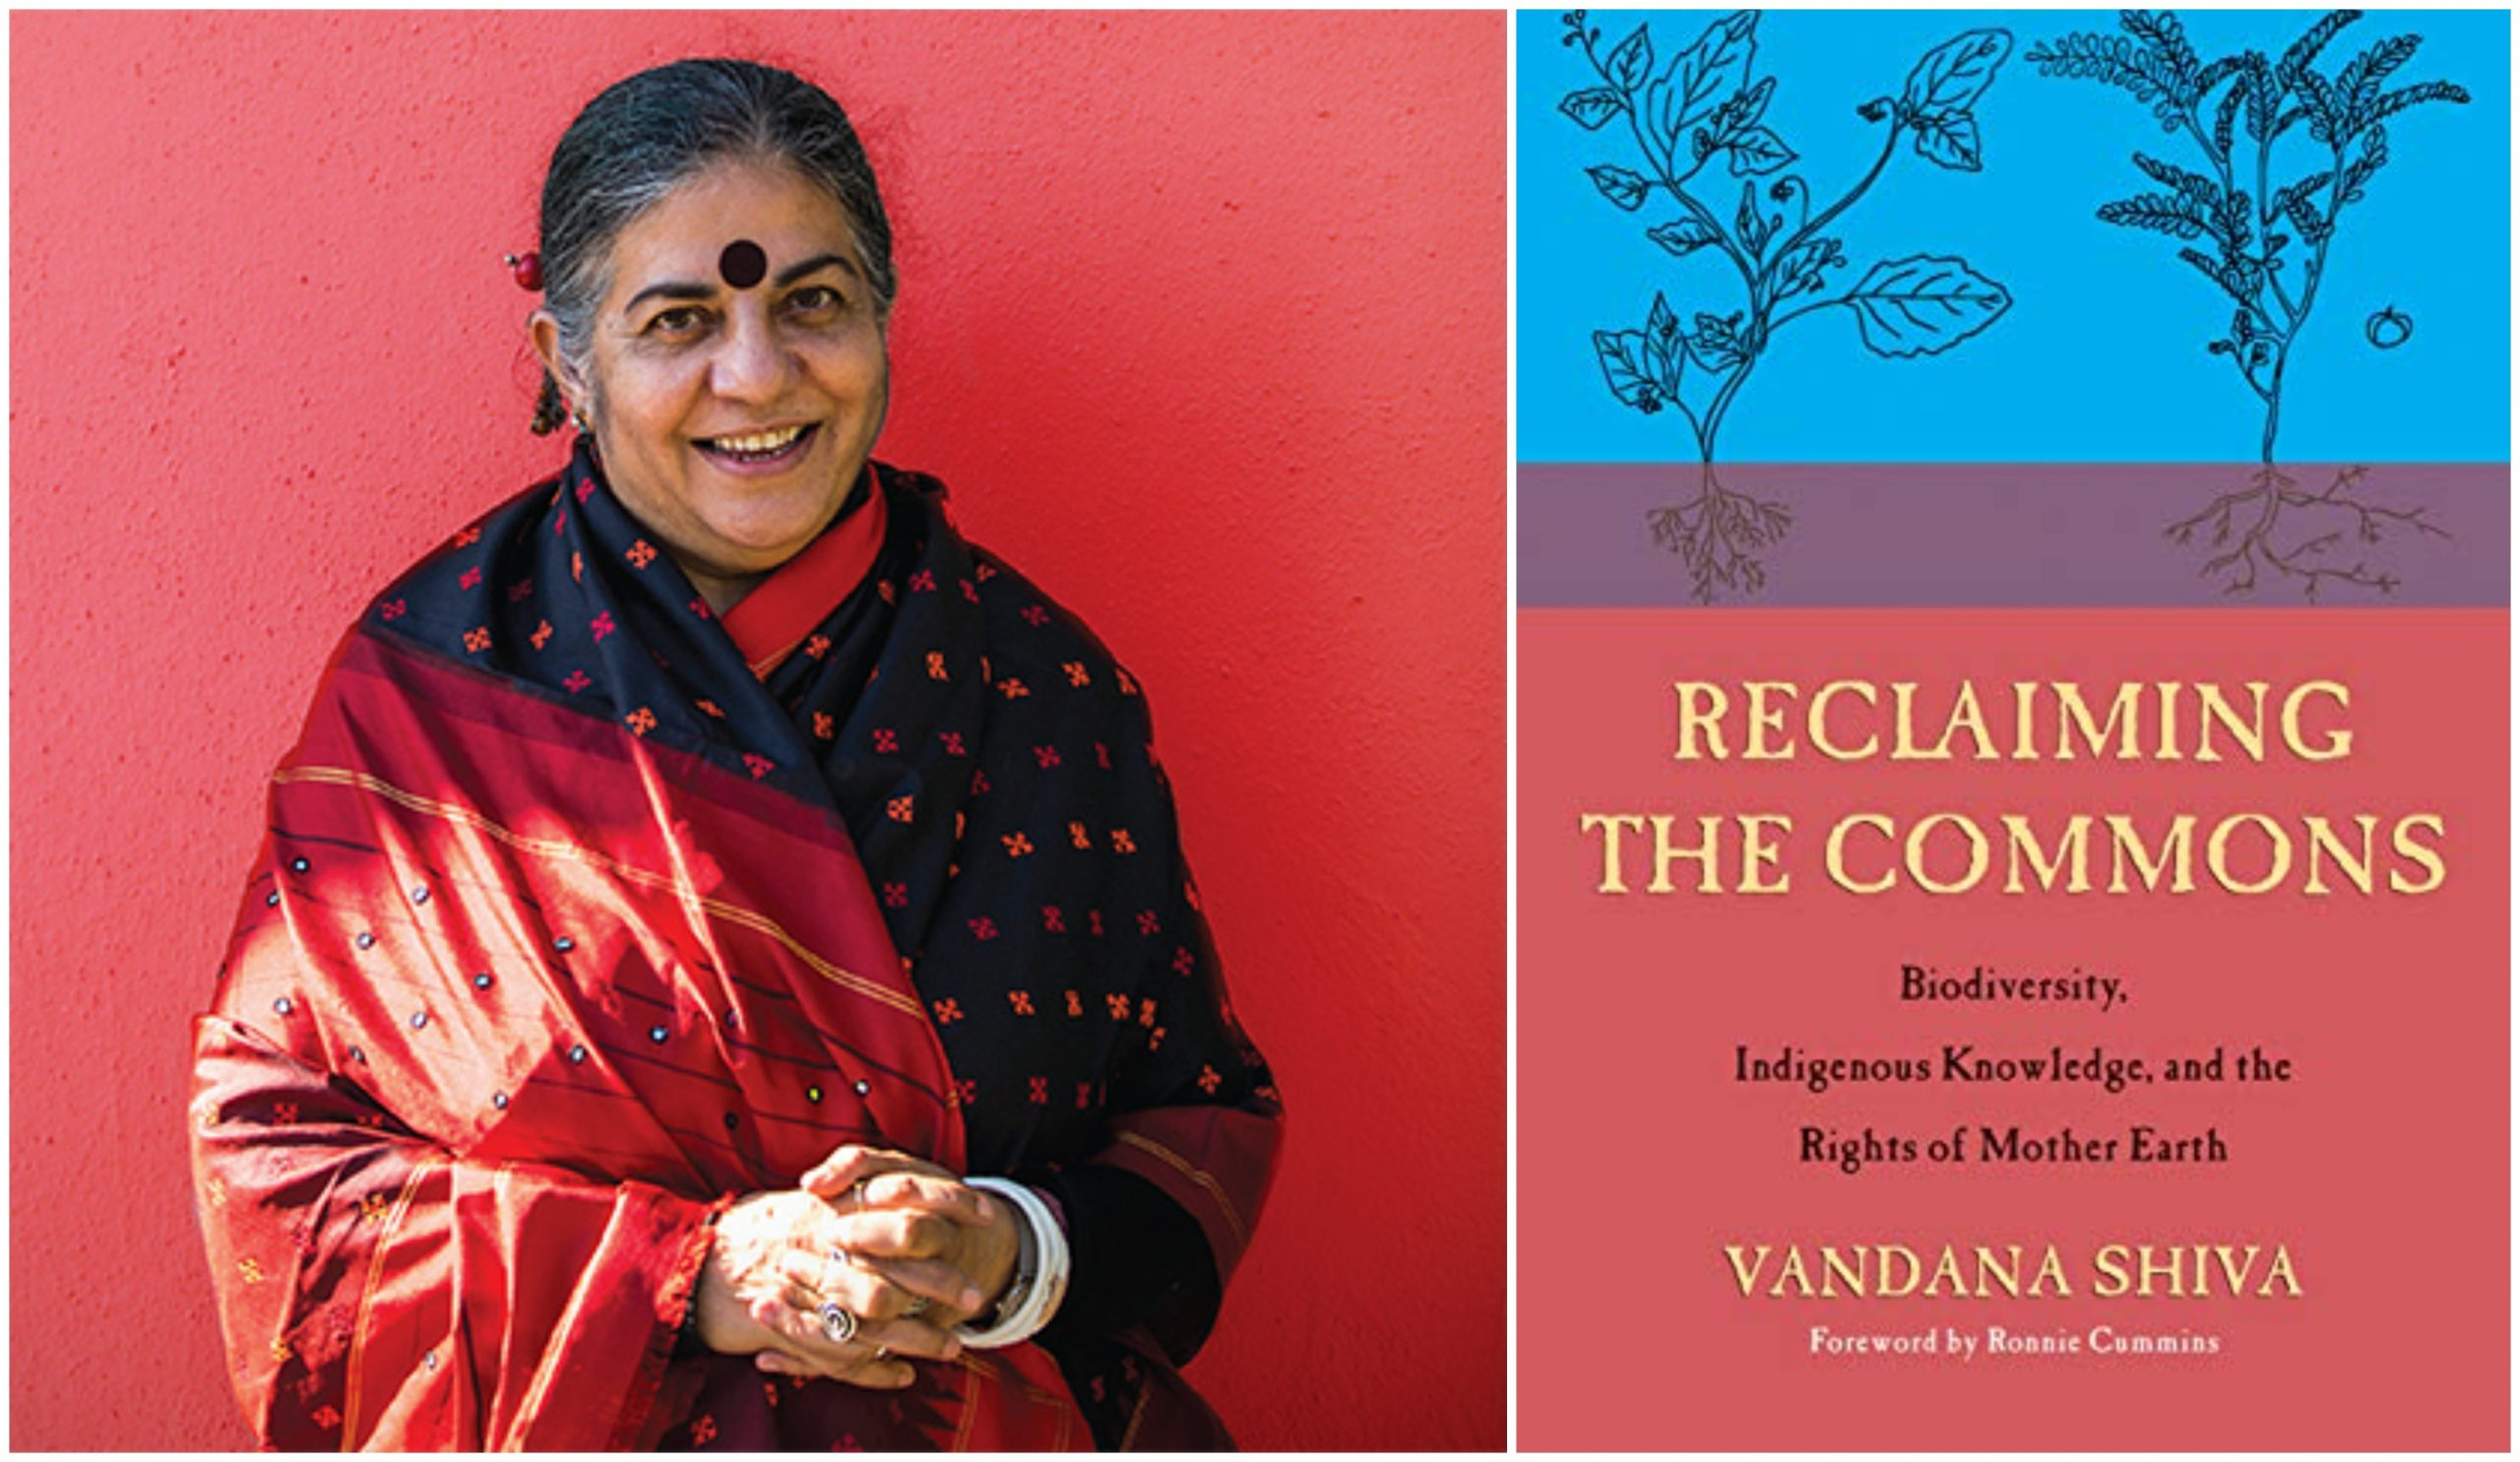 Book Review: Reclaiming The Commons By Vandana Shiva